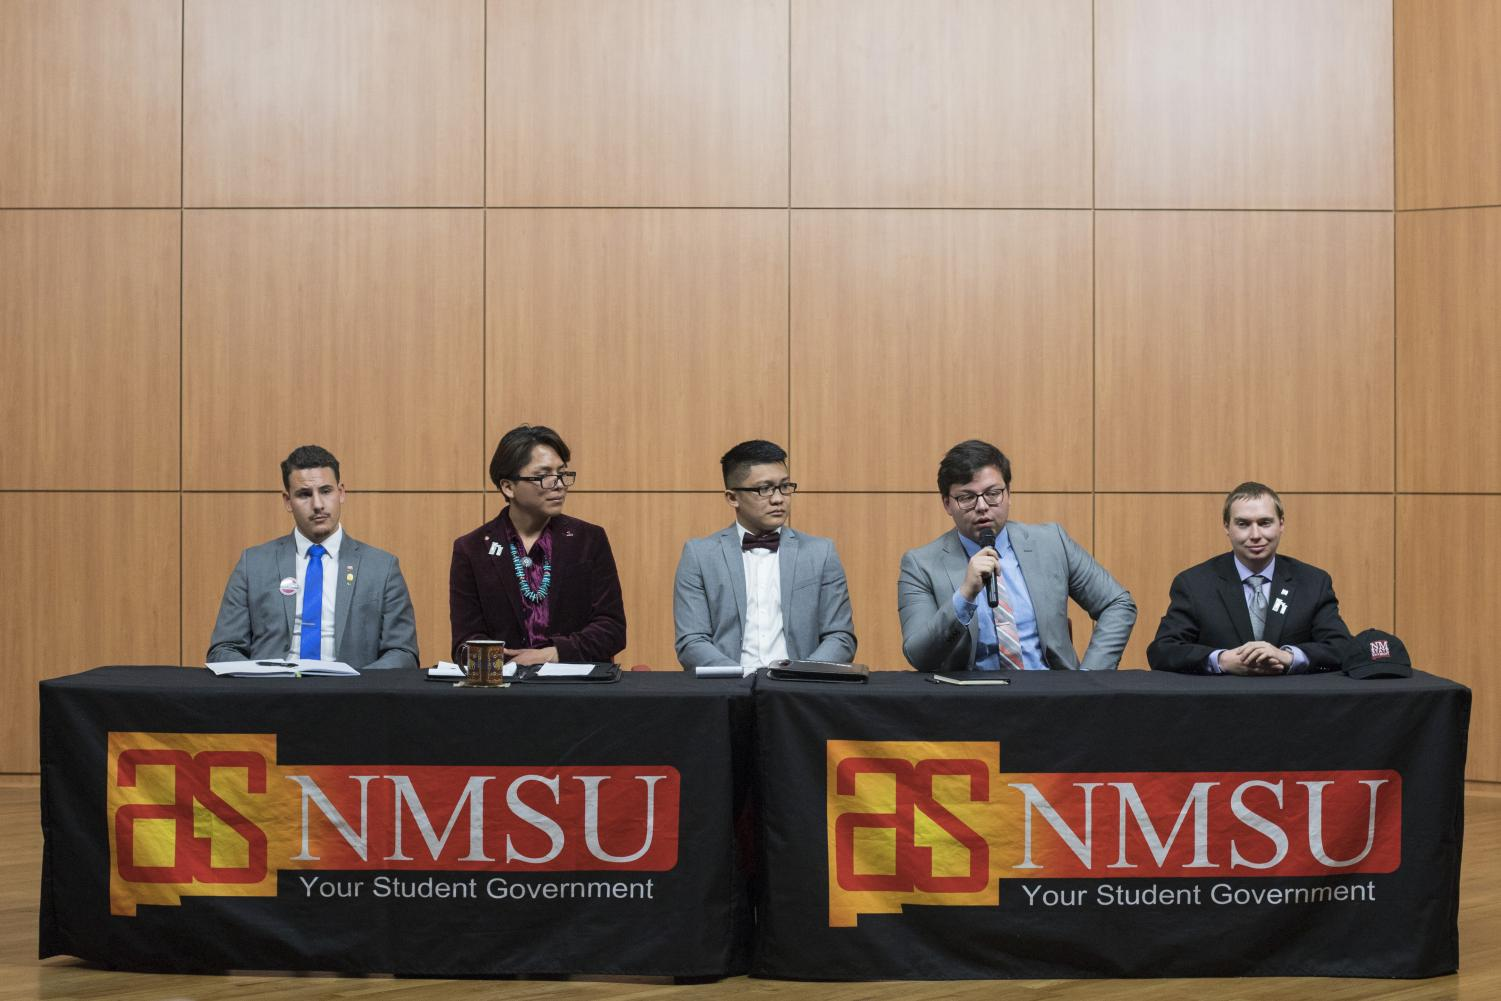 ASNMSU presidential candidates debated over NMSU issues on Wednesday.